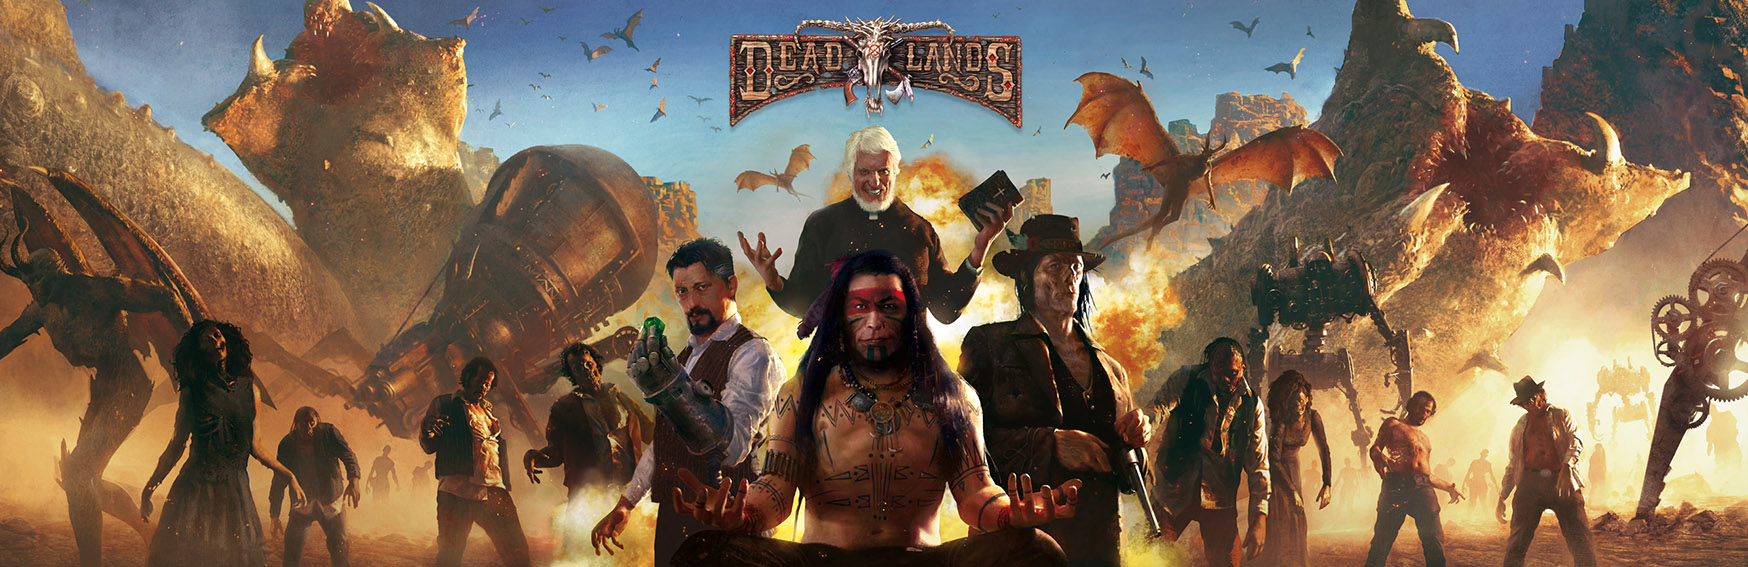 DEADLANDS RELOADED : ECRAN EPIQUE DU MARSHA